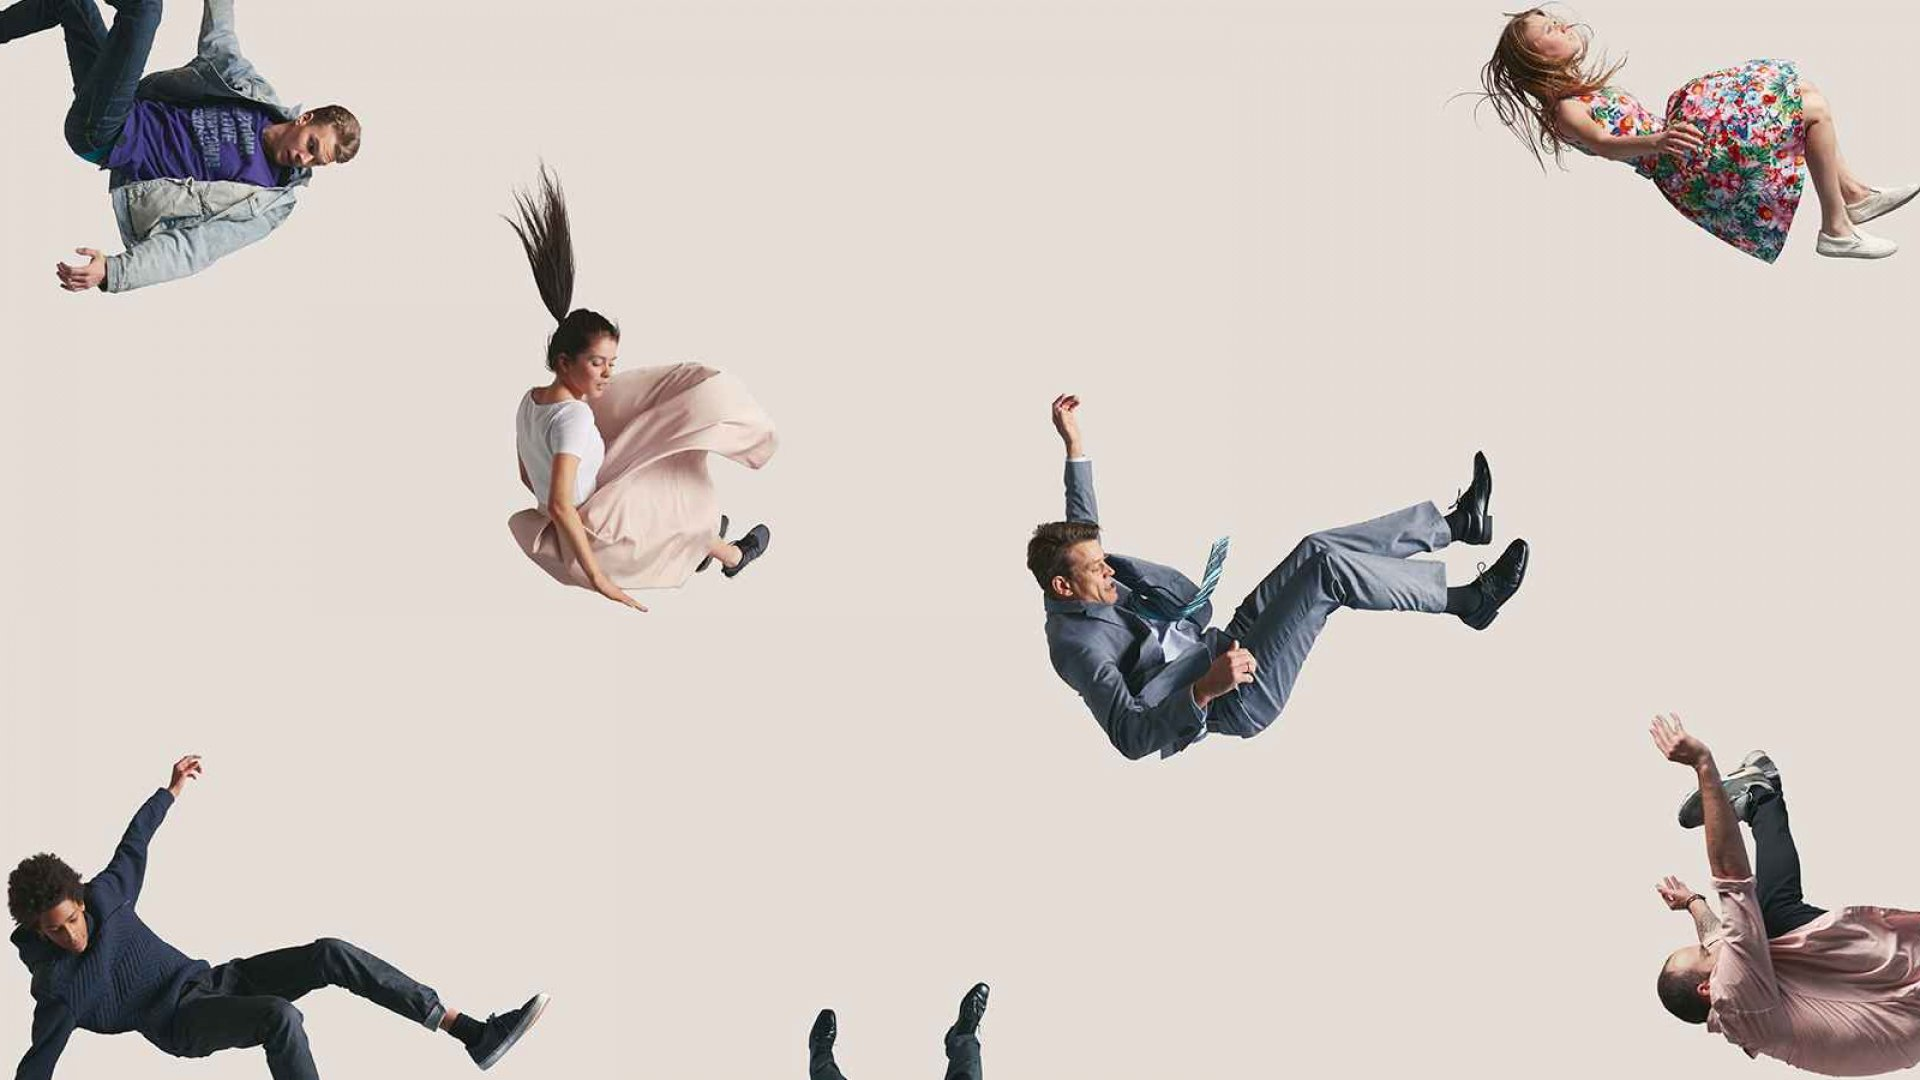 The 1 Thing Experts Miss About Taking the Startup Leap